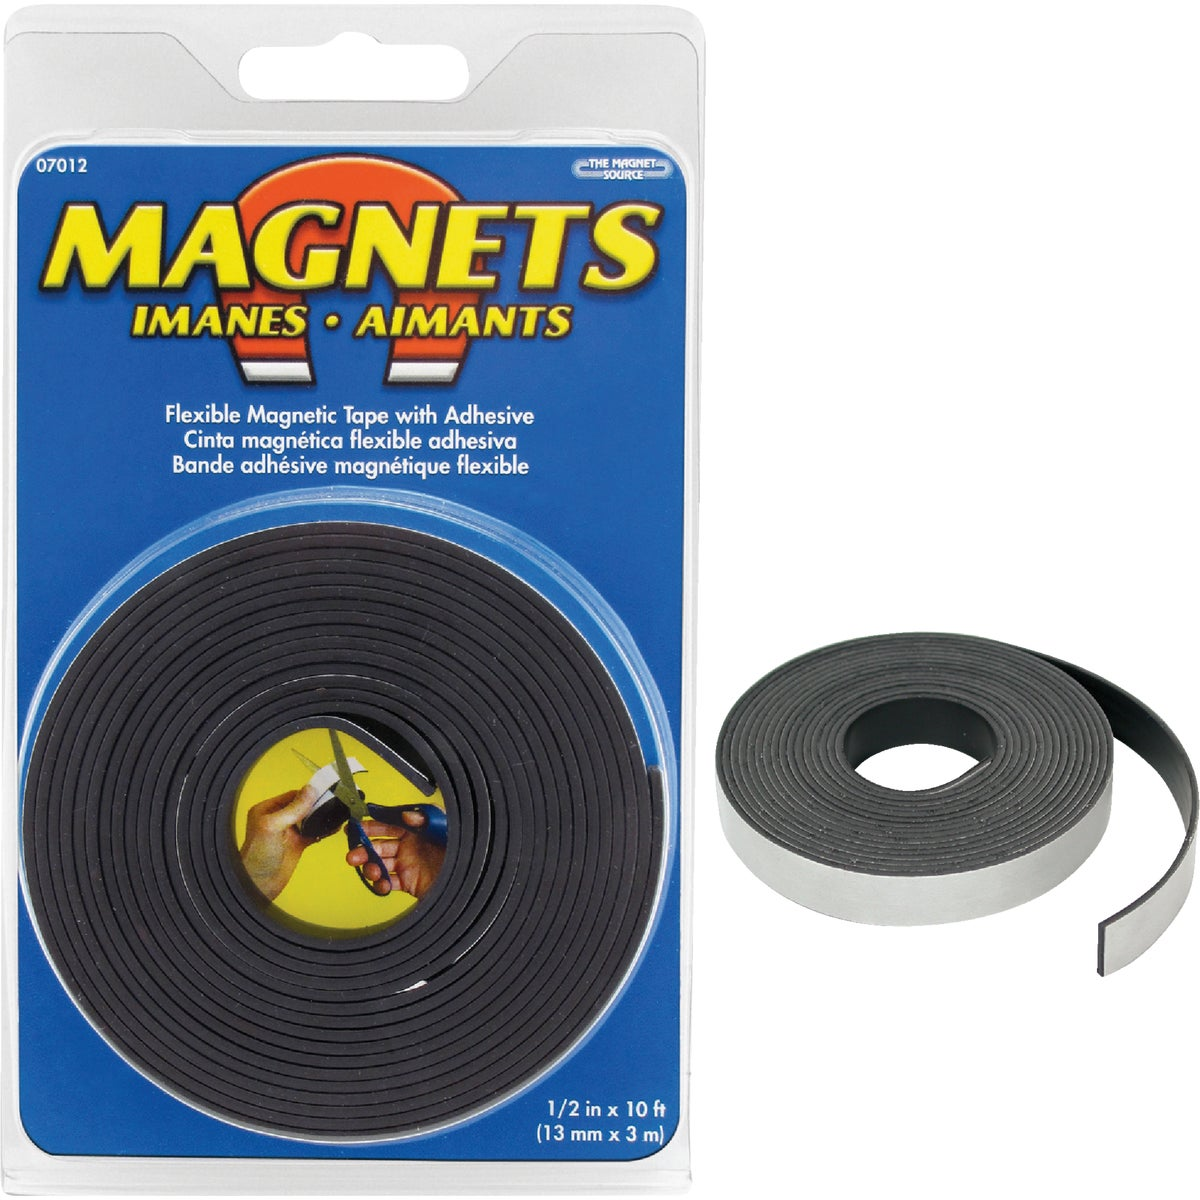 "1/2""X10' MAGNETIC TAPE - 07012 by Master Magnetics"